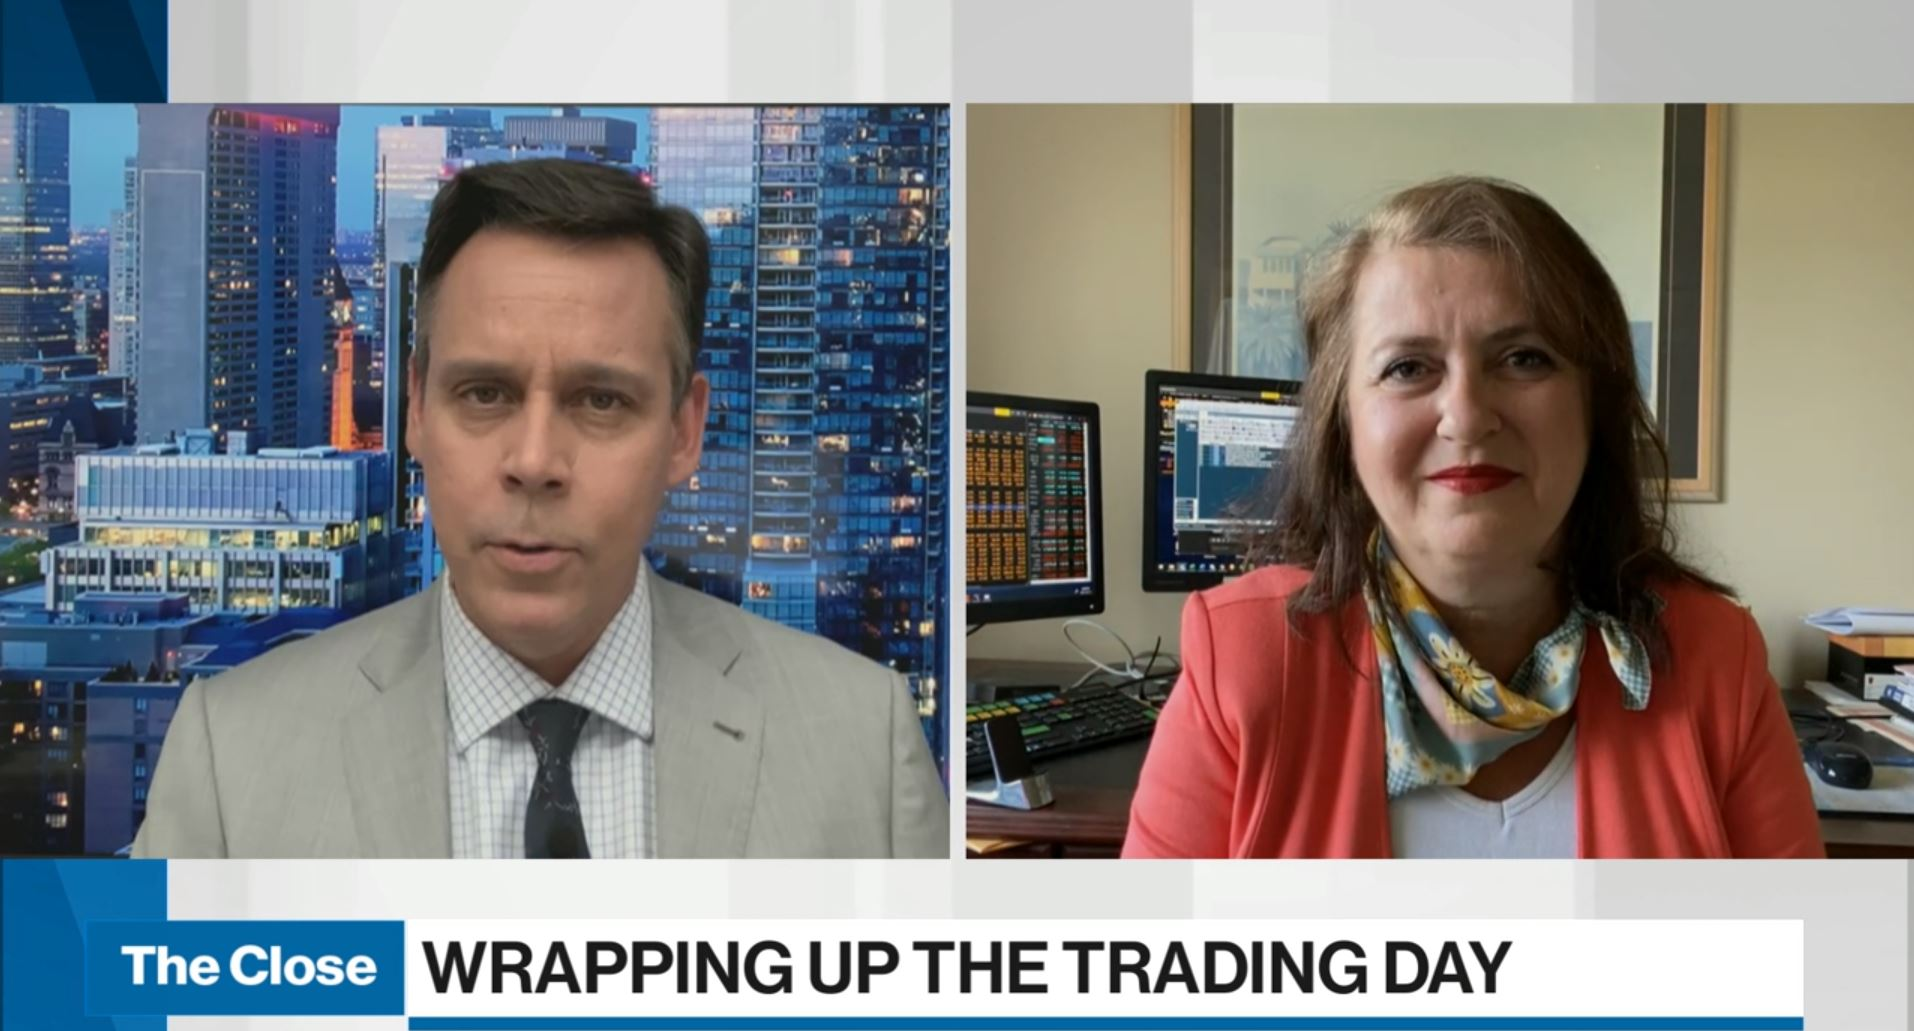 BNN's The Close With Diana Avigdor. Diana Discusses Her Outlook On The Market and Why She Sees Opportunity In Estée Lauder As Travel And Retail Begin To Reopen